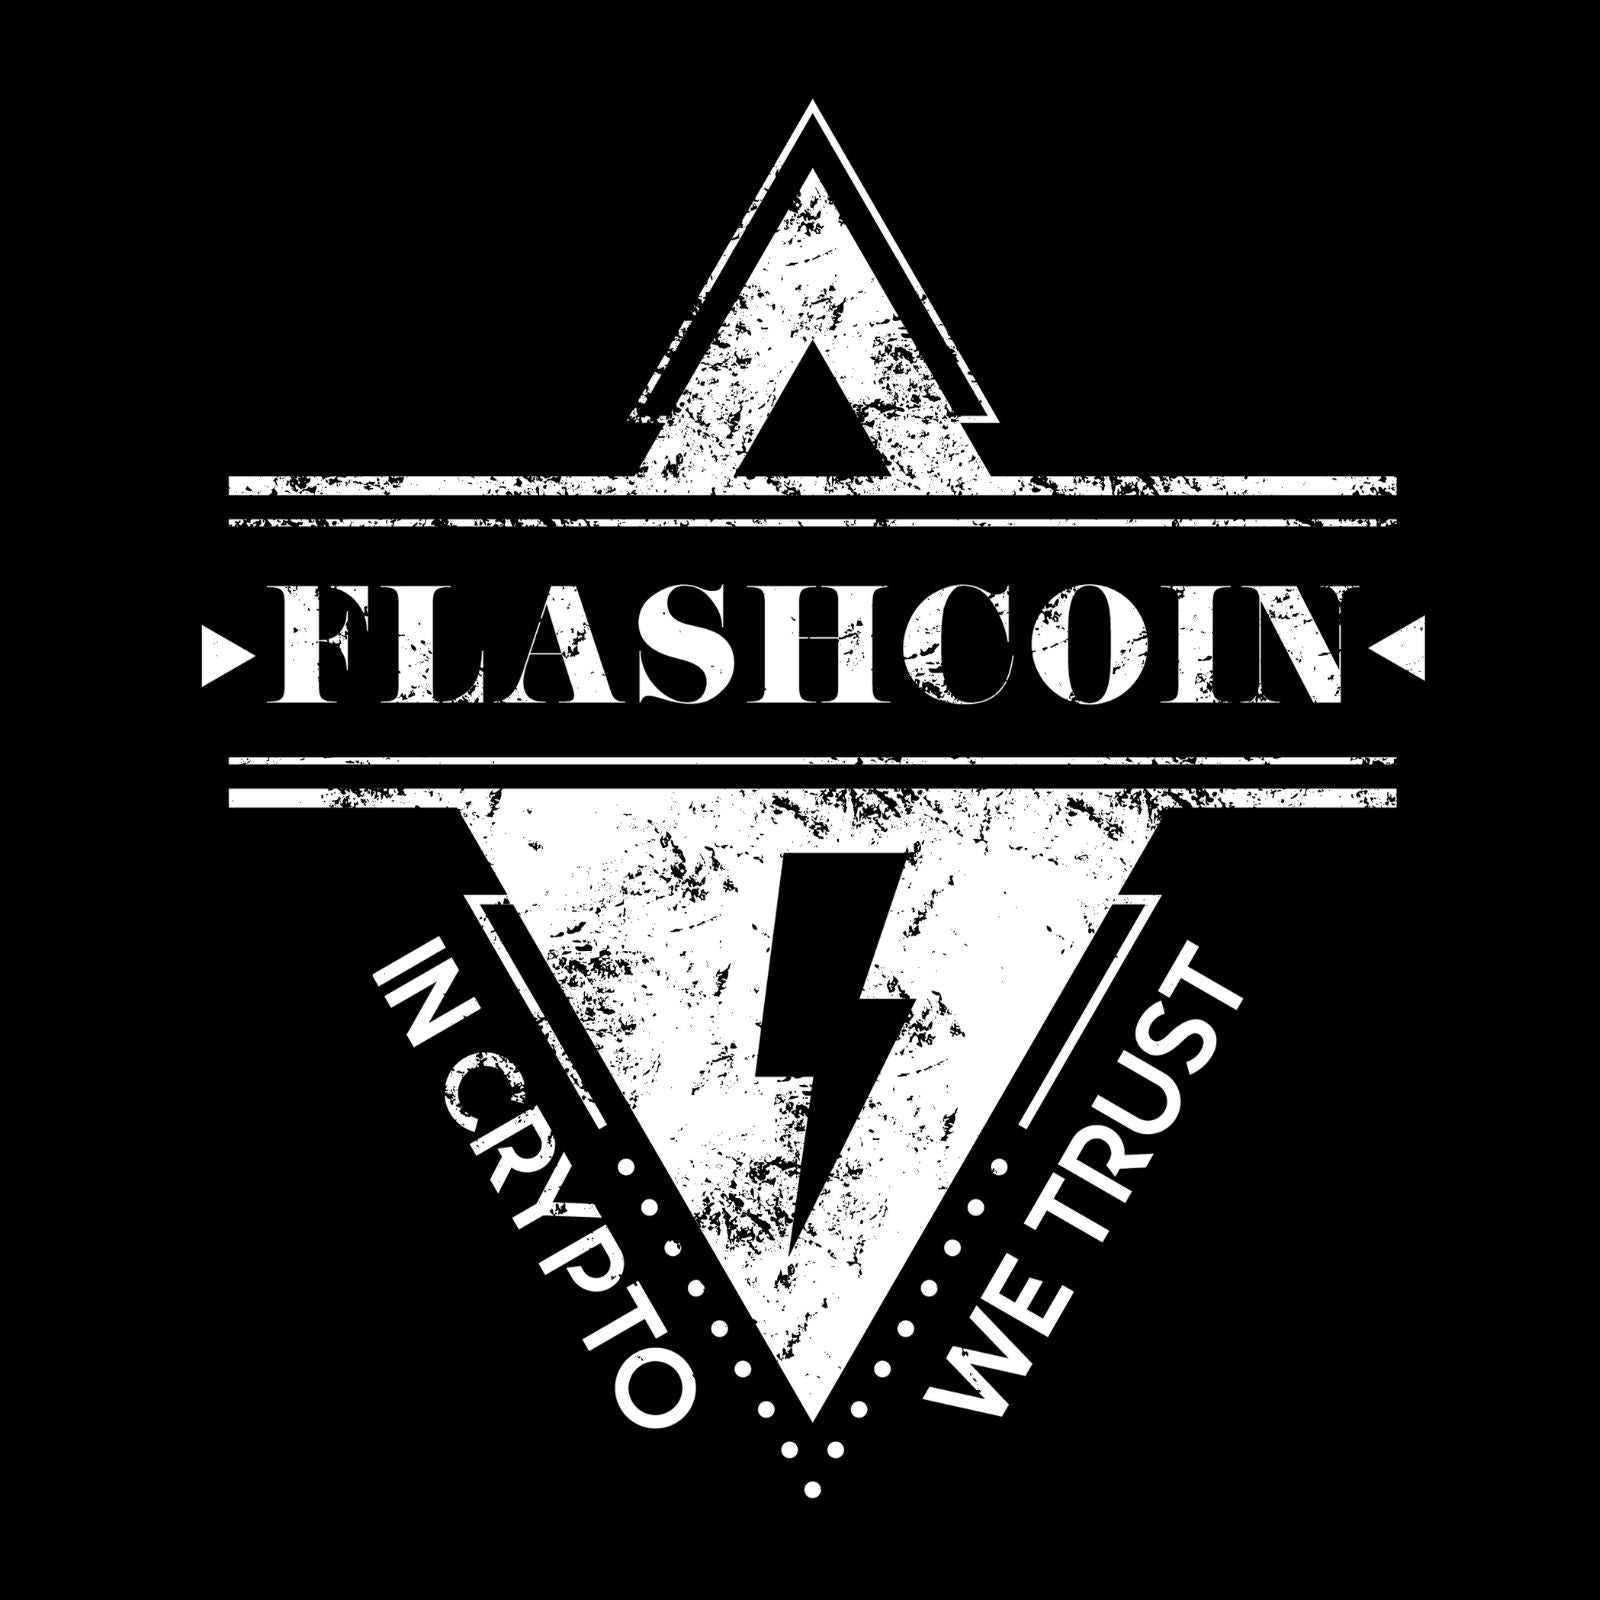 Flashcoin In Crypto We Trust - Bastard Graphics